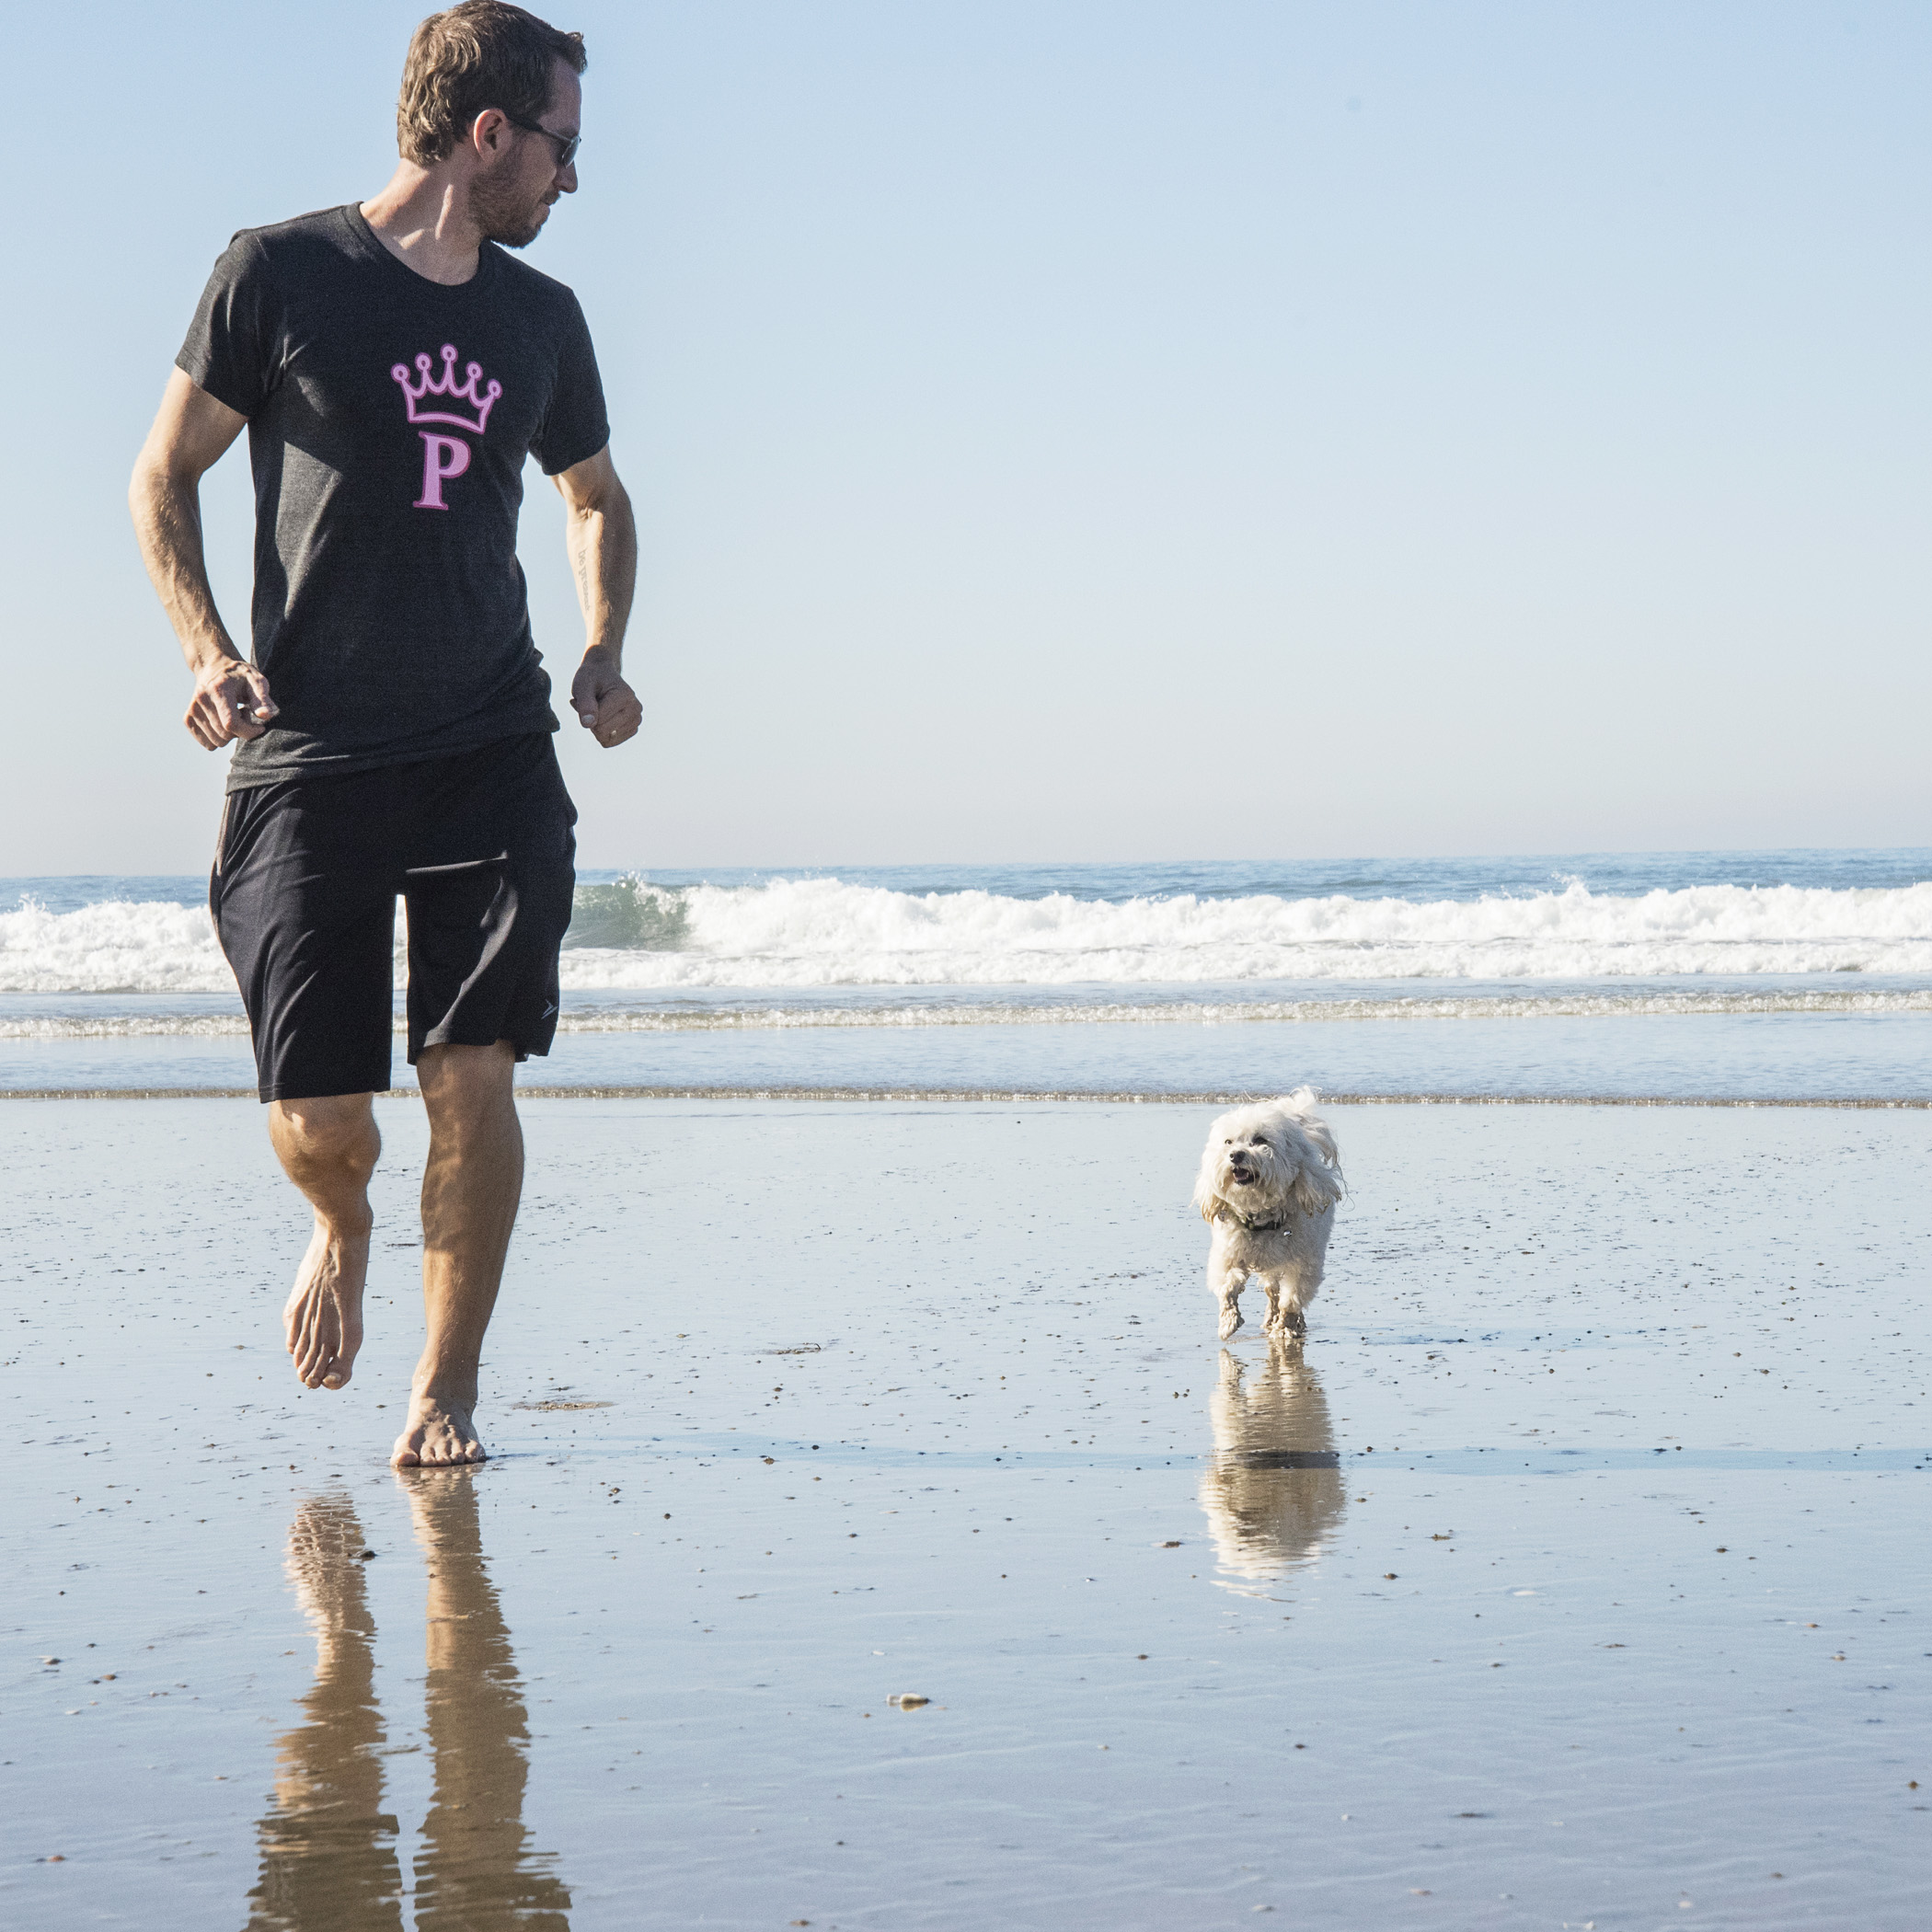 Exploring, playing, running, making friends…the beach is AWESOME!